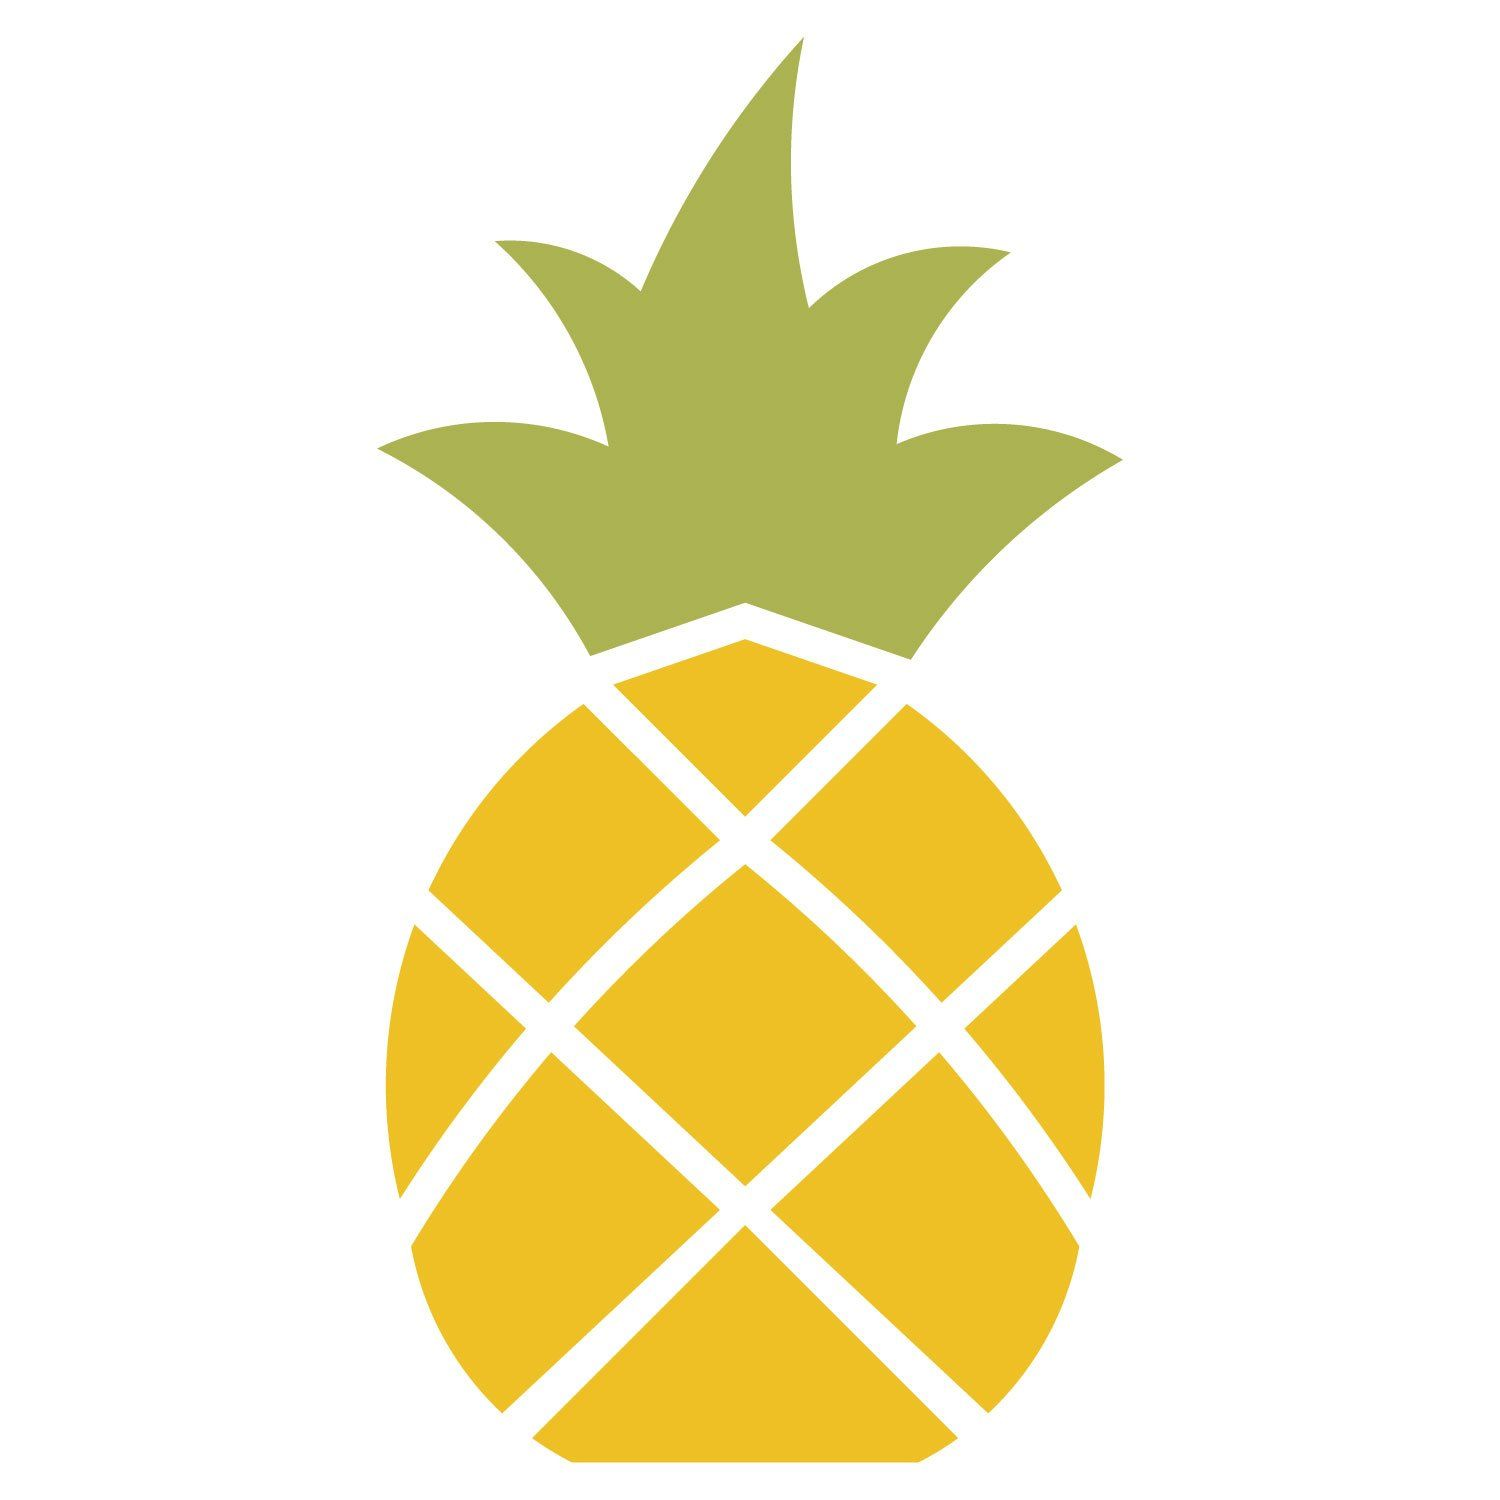 Pineapple Stencil   Pineapple drawing, Pineapple clipart ...  Cute Pineapple Stencil